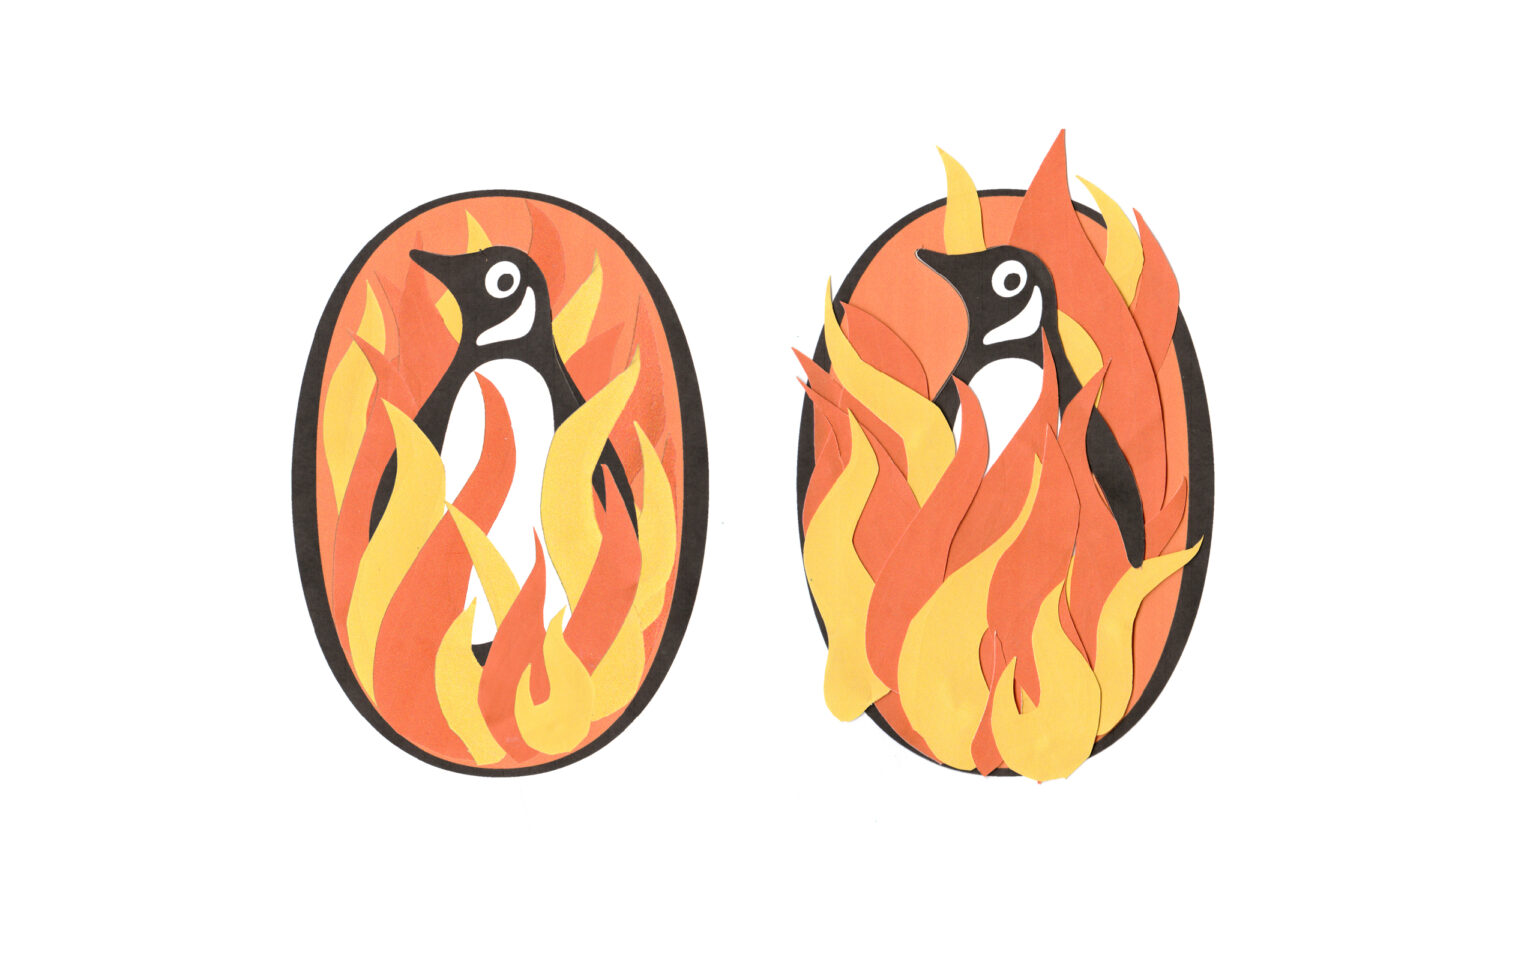 cut out orange flames placed on top of photocopy